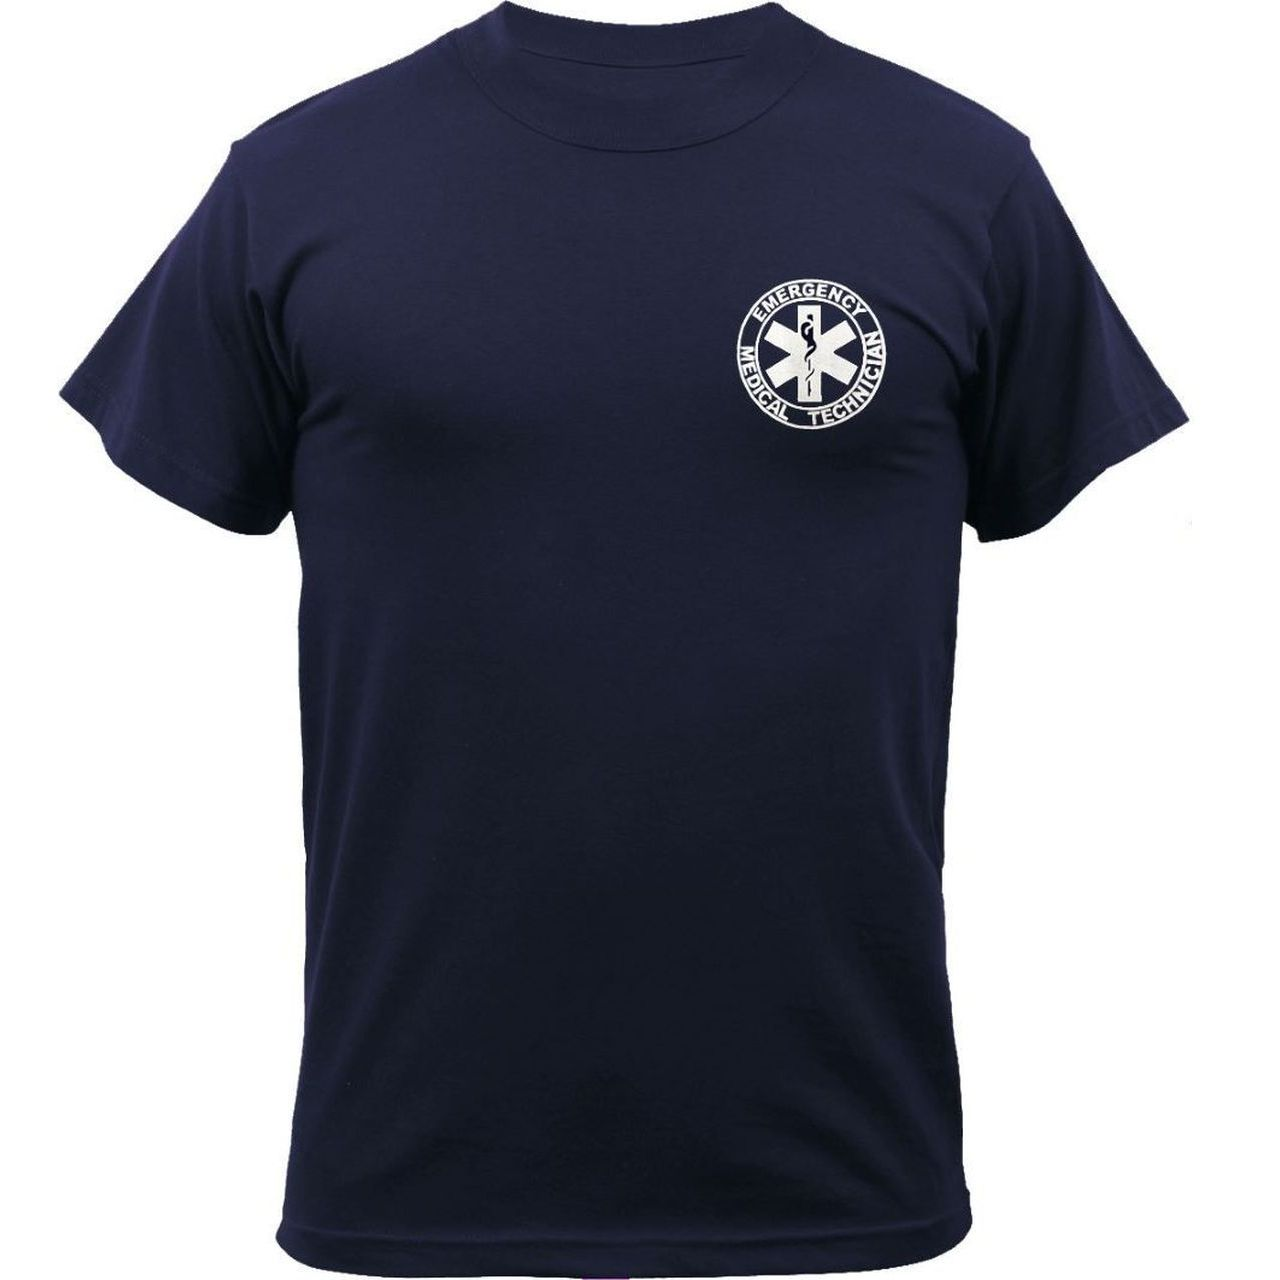 Kemp USA Navy EMT Shirt With Front And Back Logo - XL